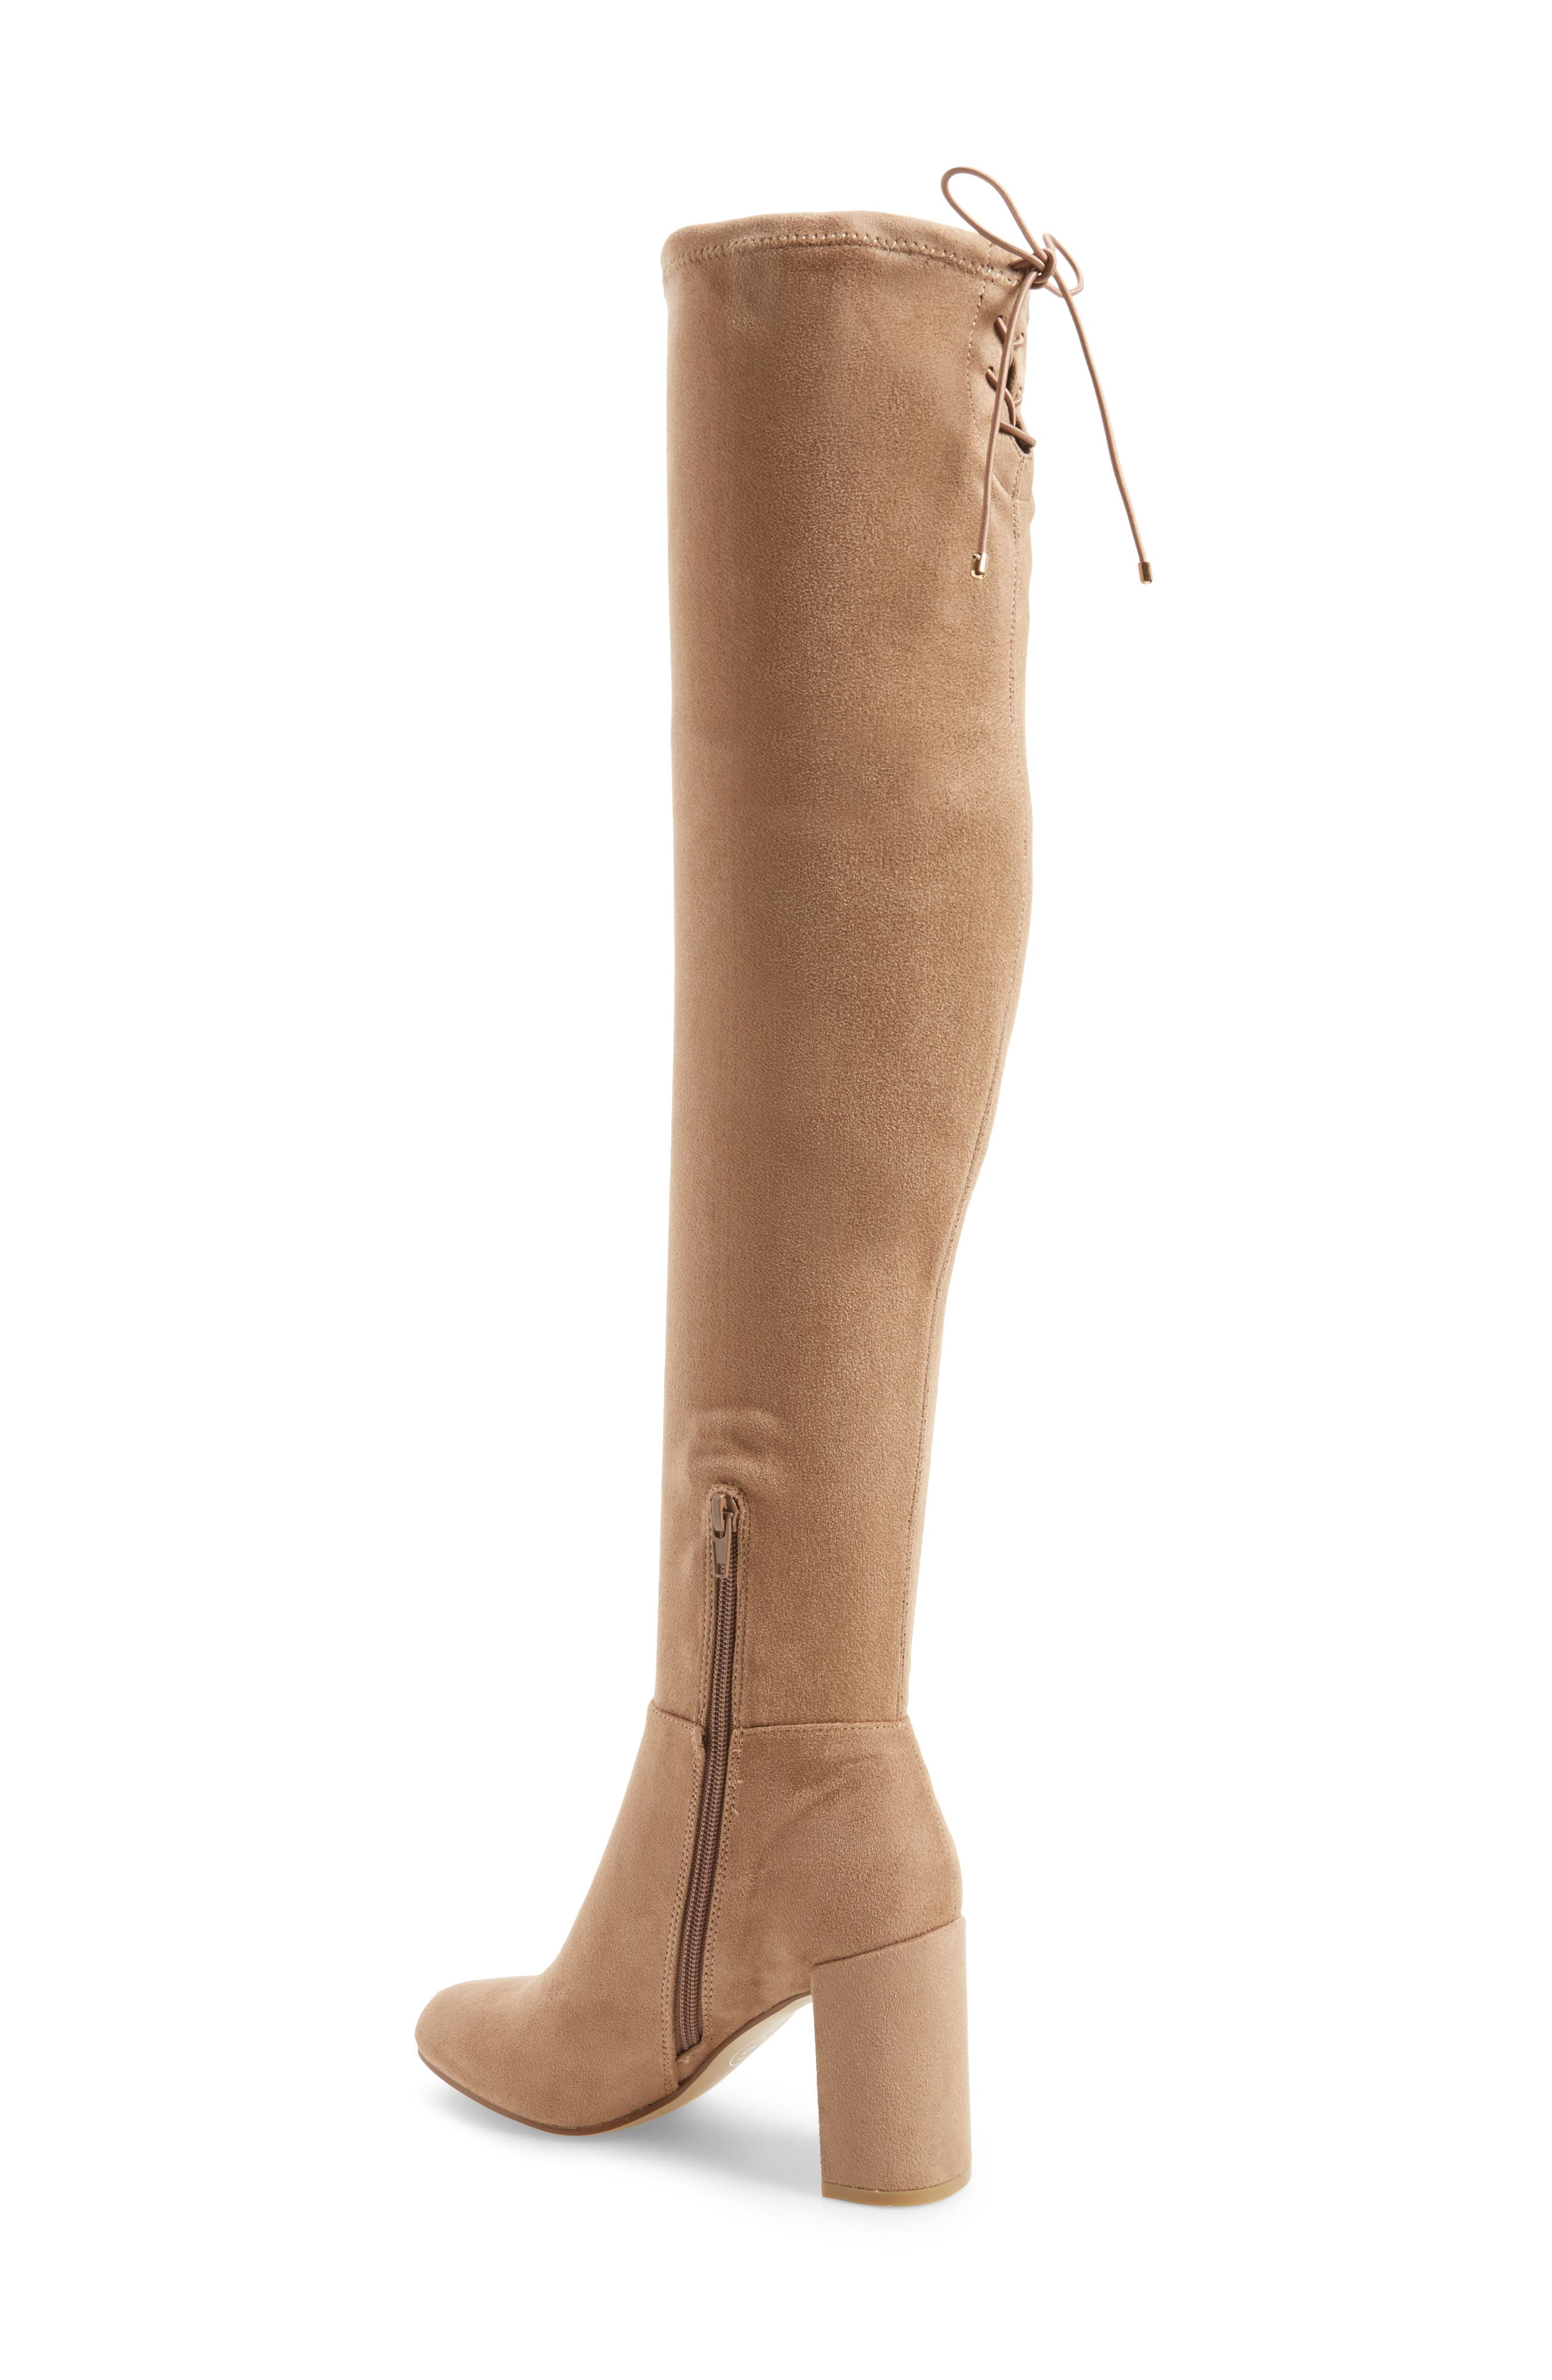 Krush Over the Knee Boot,                             Alternate thumbnail 2, color,                             Mink Suede